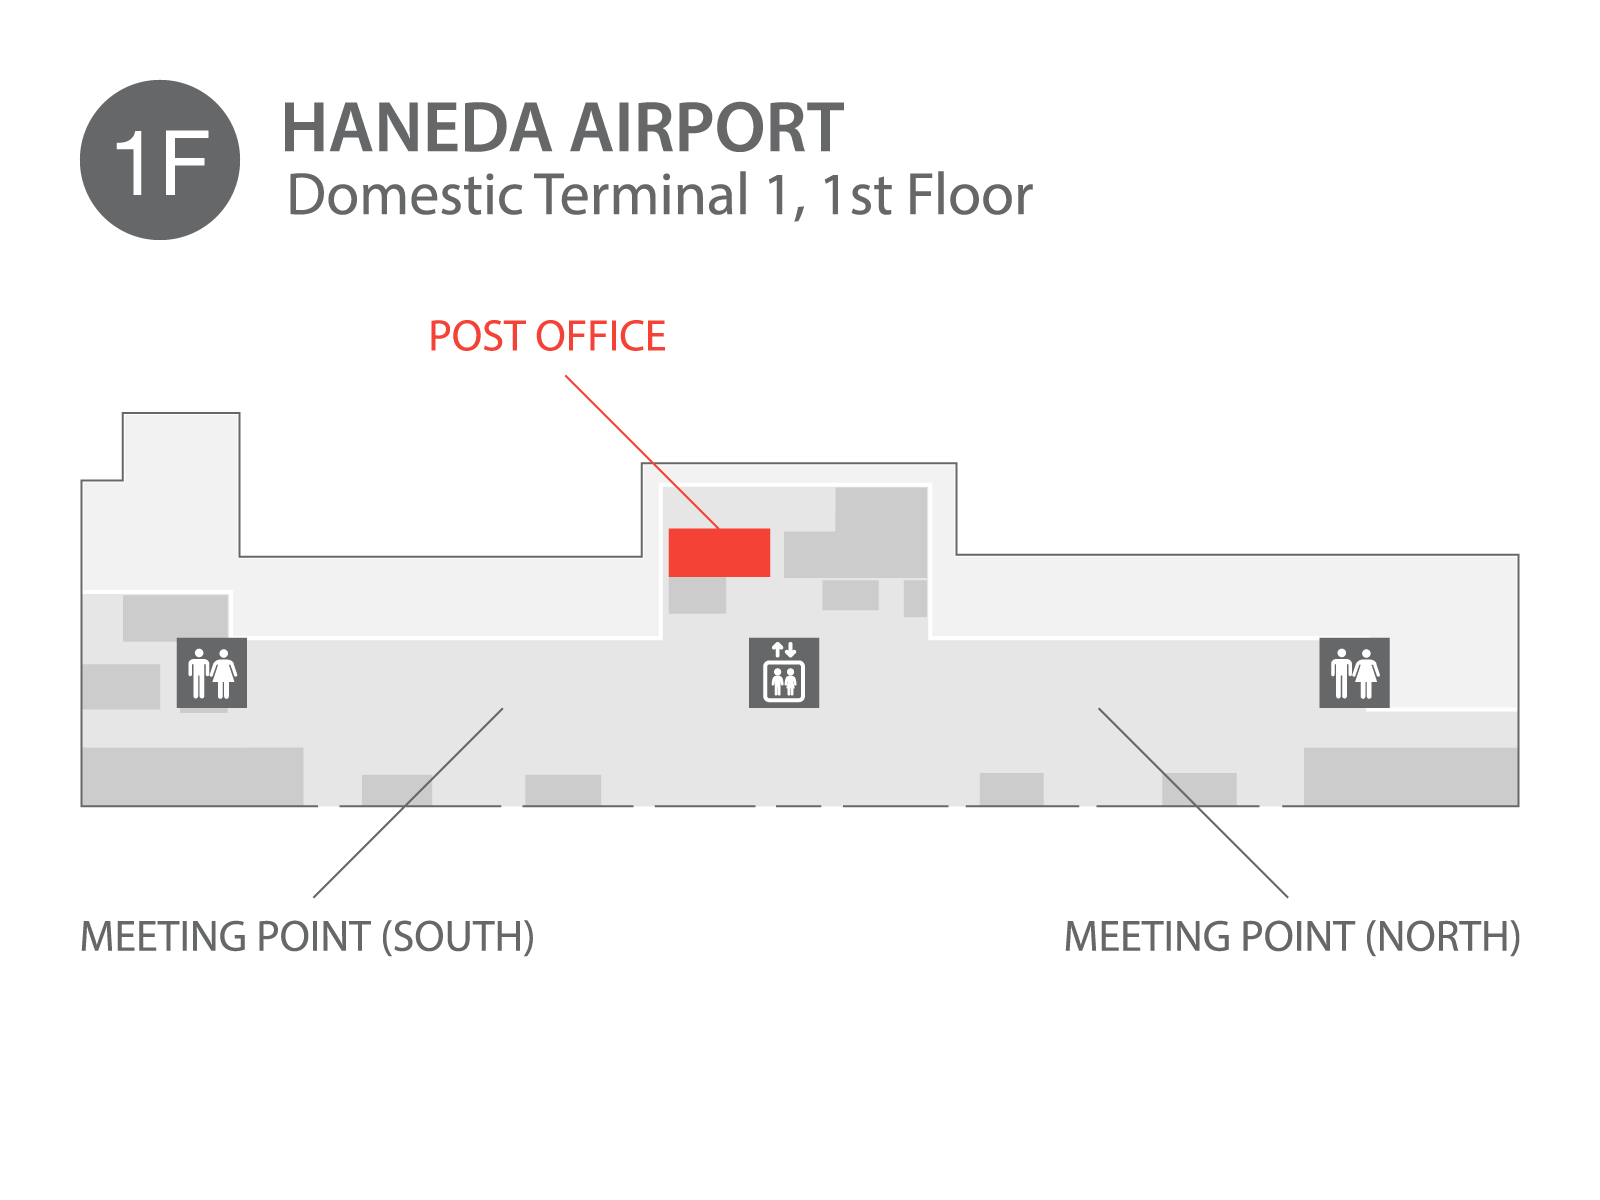 Haneda Airport Domestic Terminal 1 - Haneda airport Domestic Terminal 1.